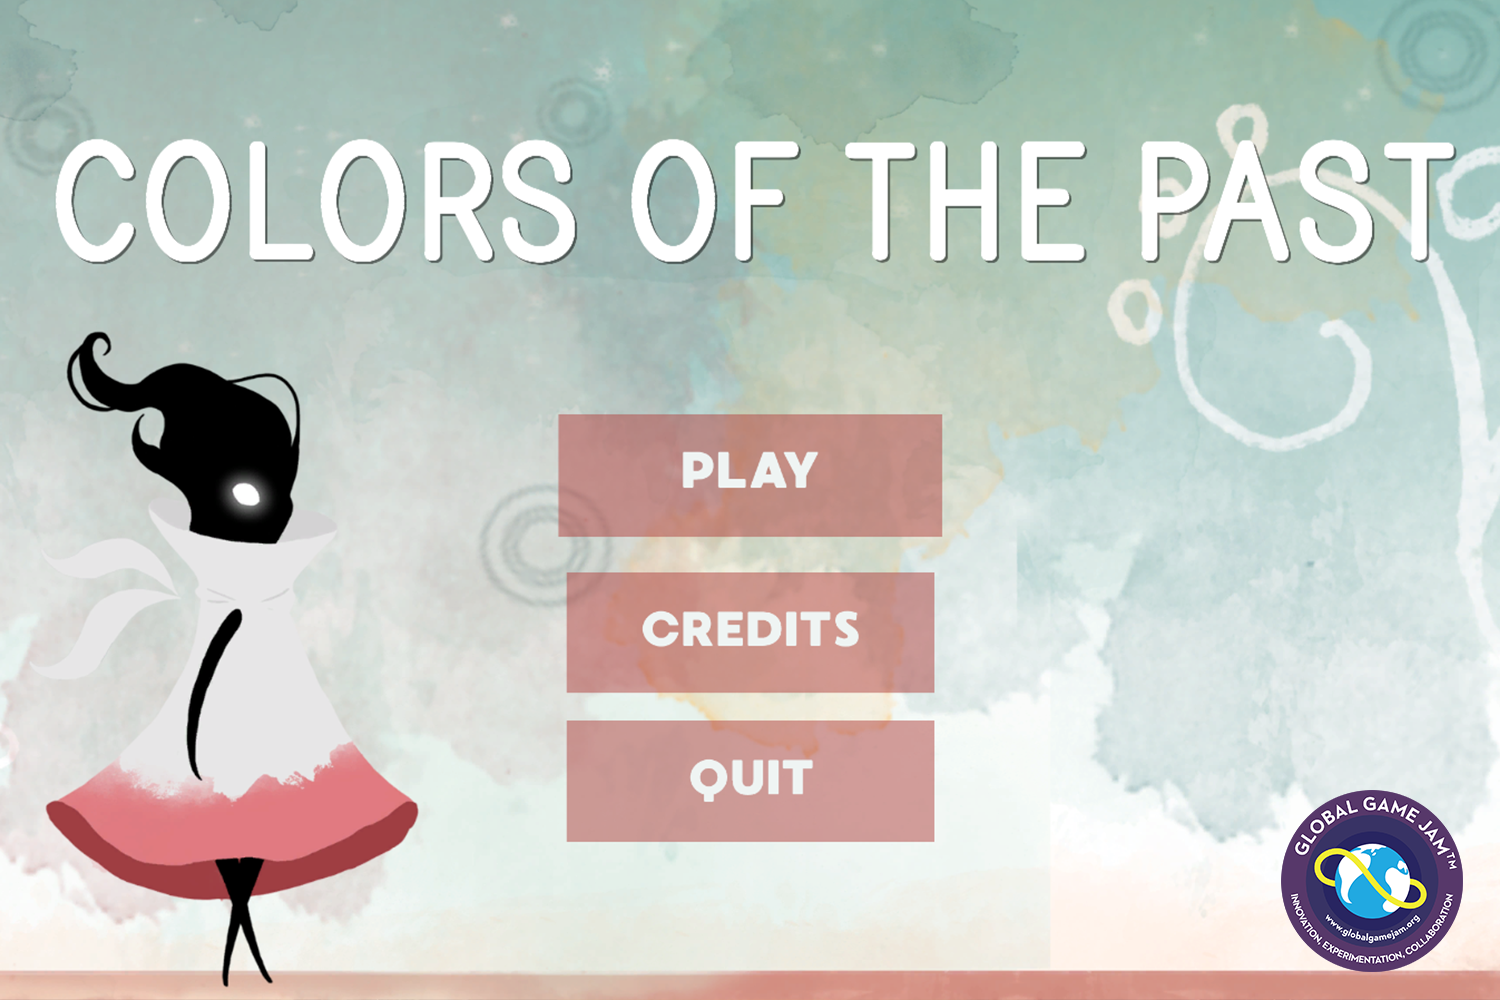 Laila bouchara UX/UI designer - Colors of the past narrative game global game jam